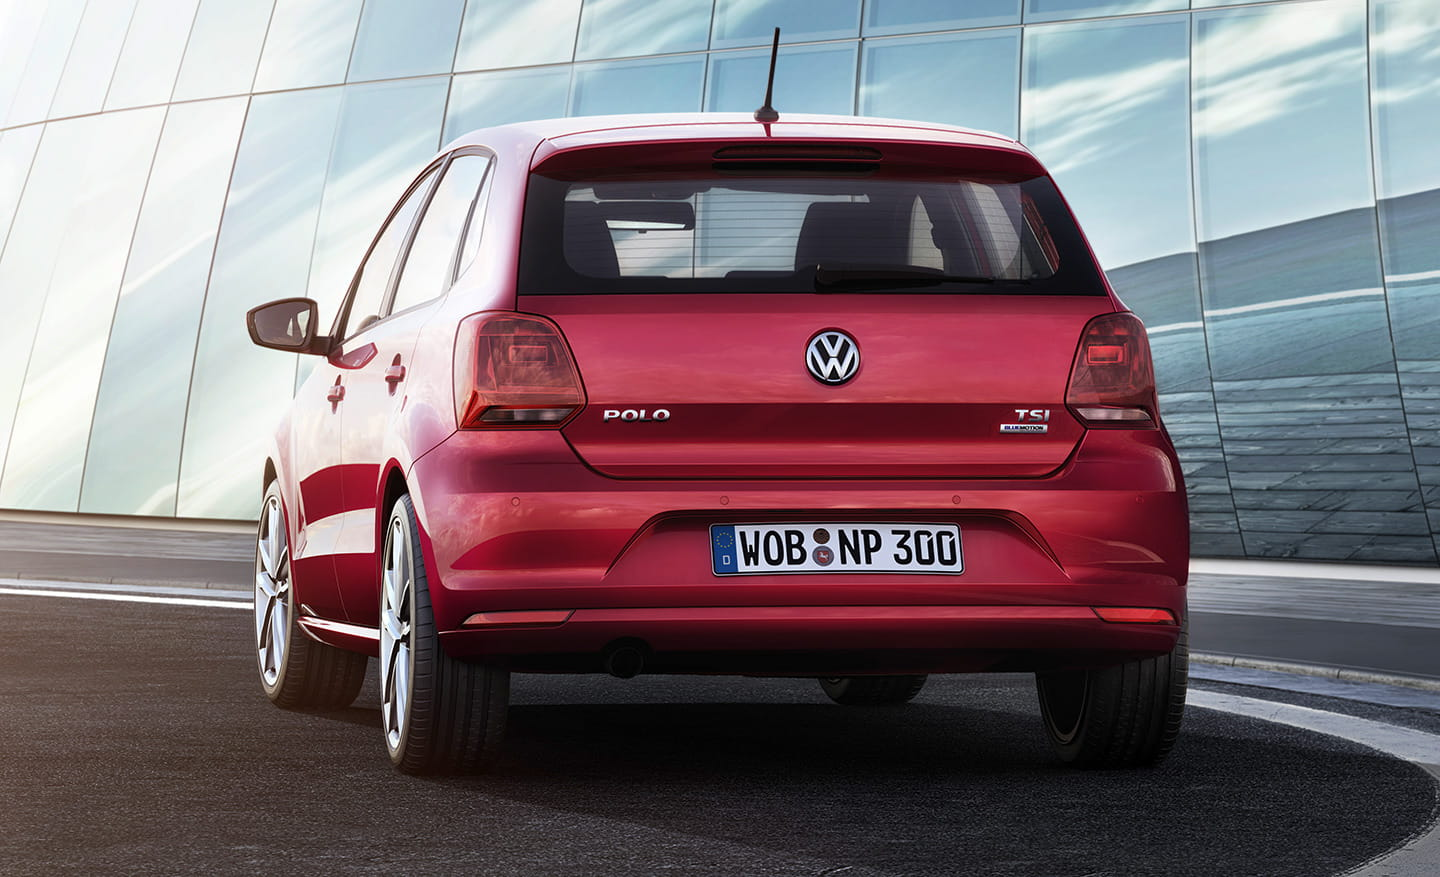 volkswagen-polo-02-1440px